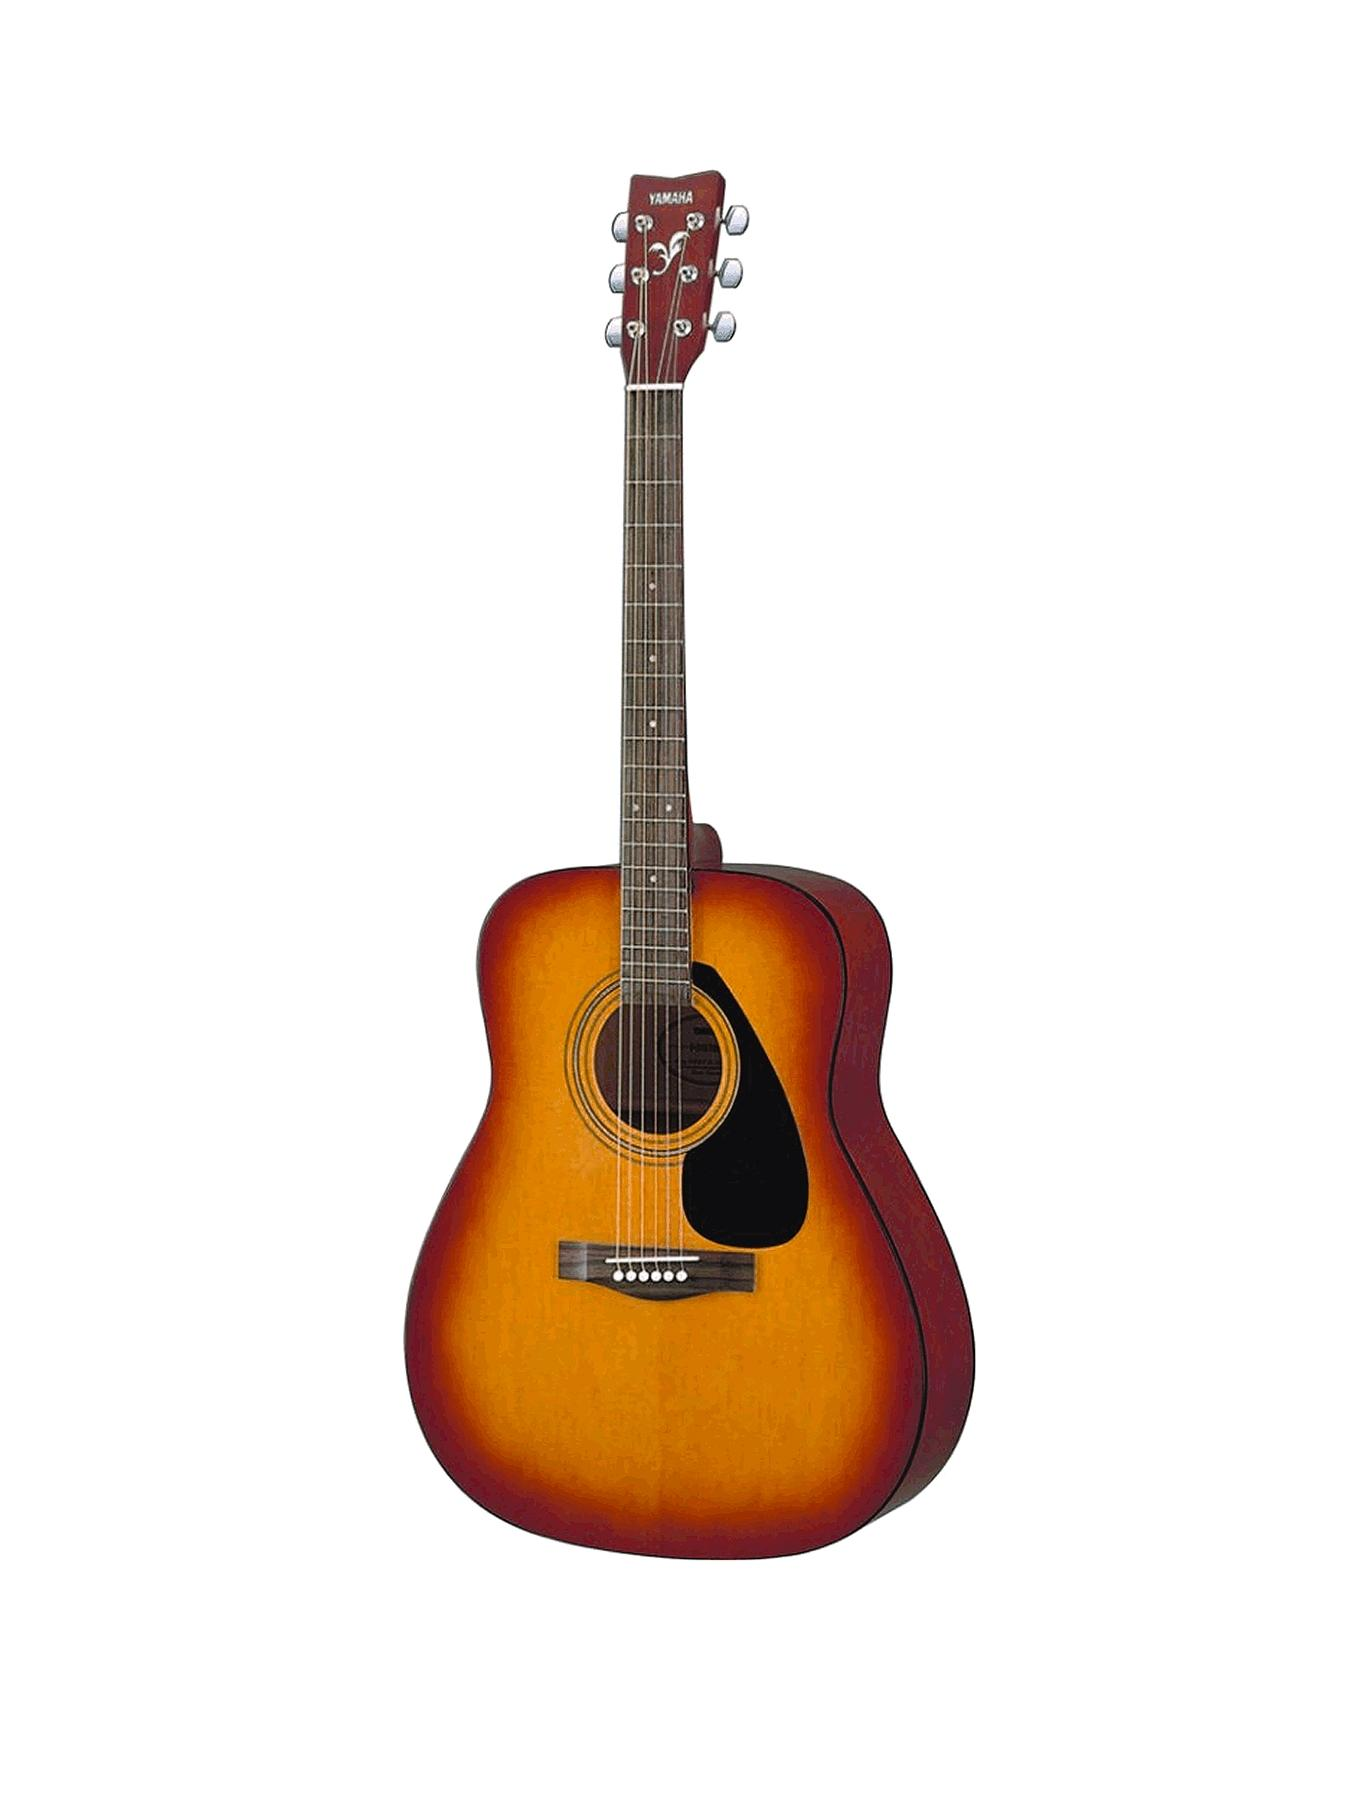 Yamaha Acoustic F310 Guitar Musical Instrument - Tobacco Brown Sunburst